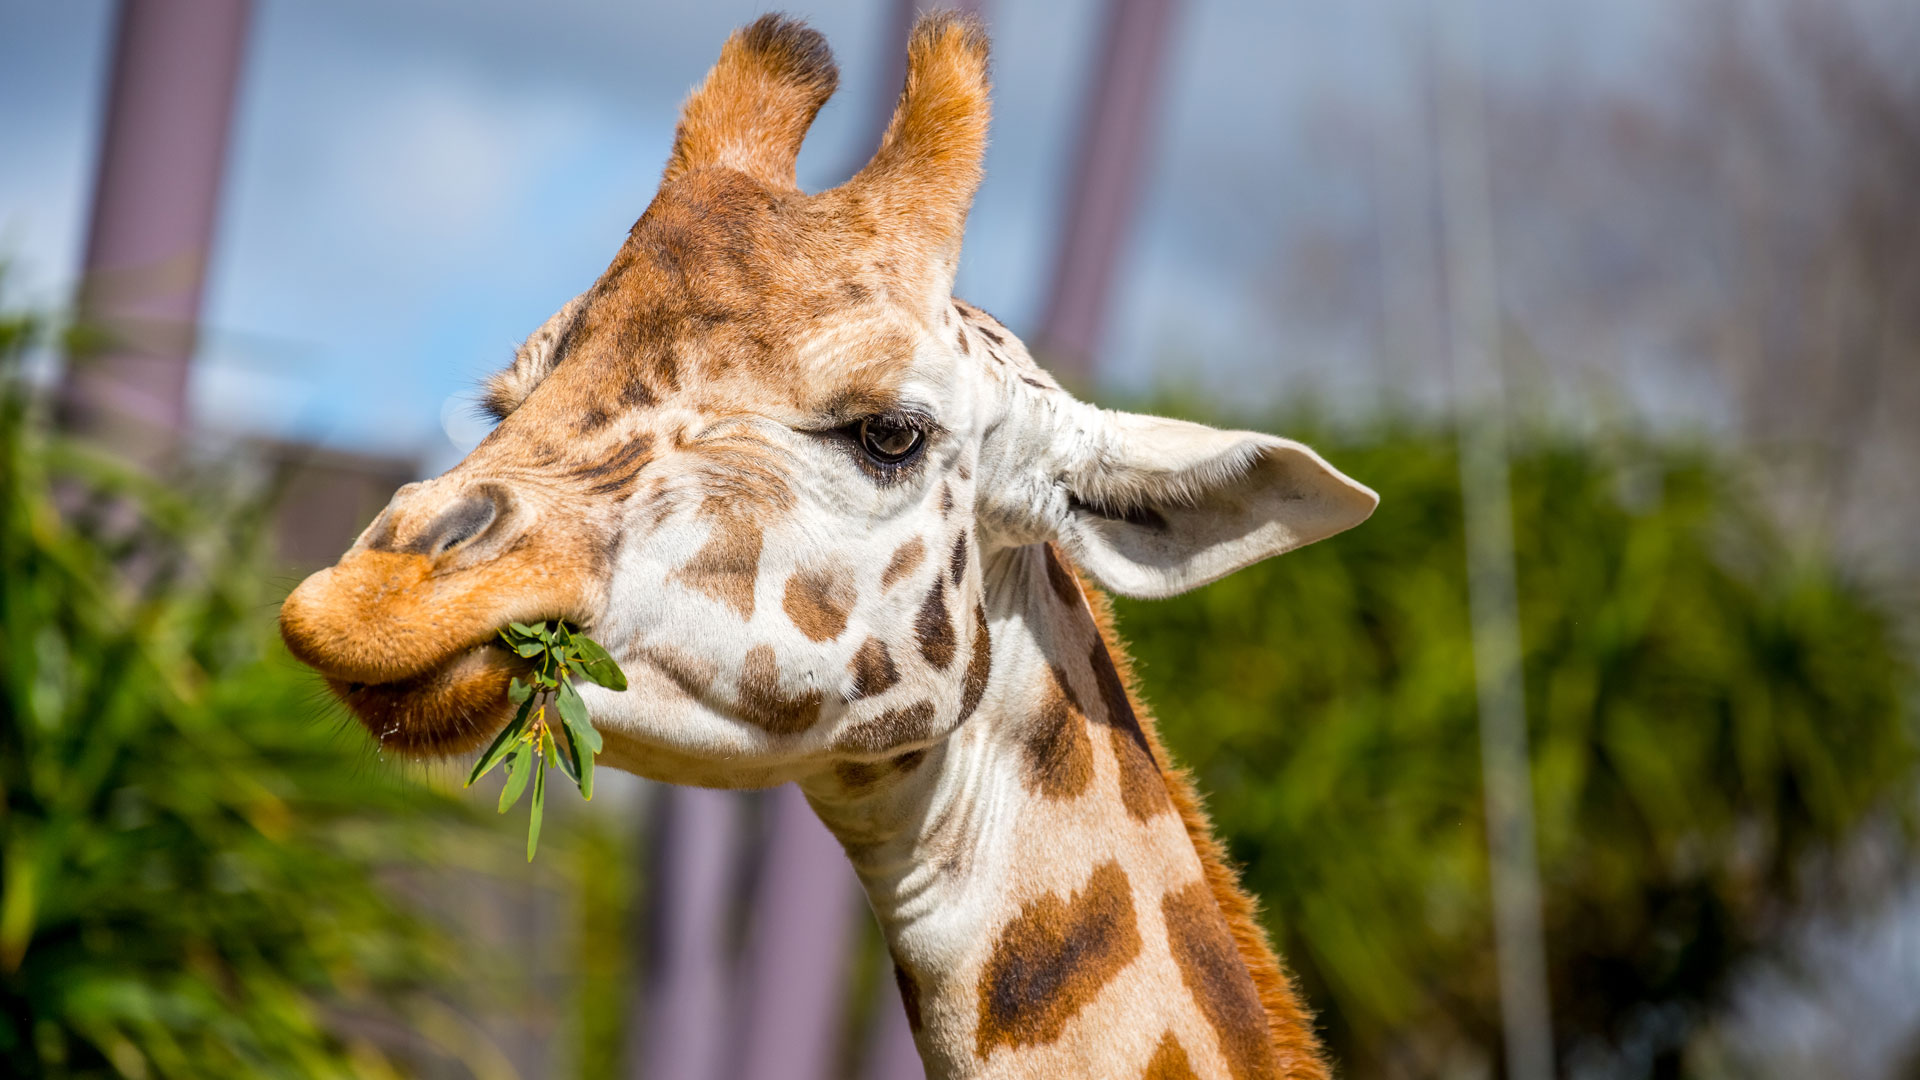 https://rfacdn.nz/zoo/assets/media/giraffe-gallery-1.jpg